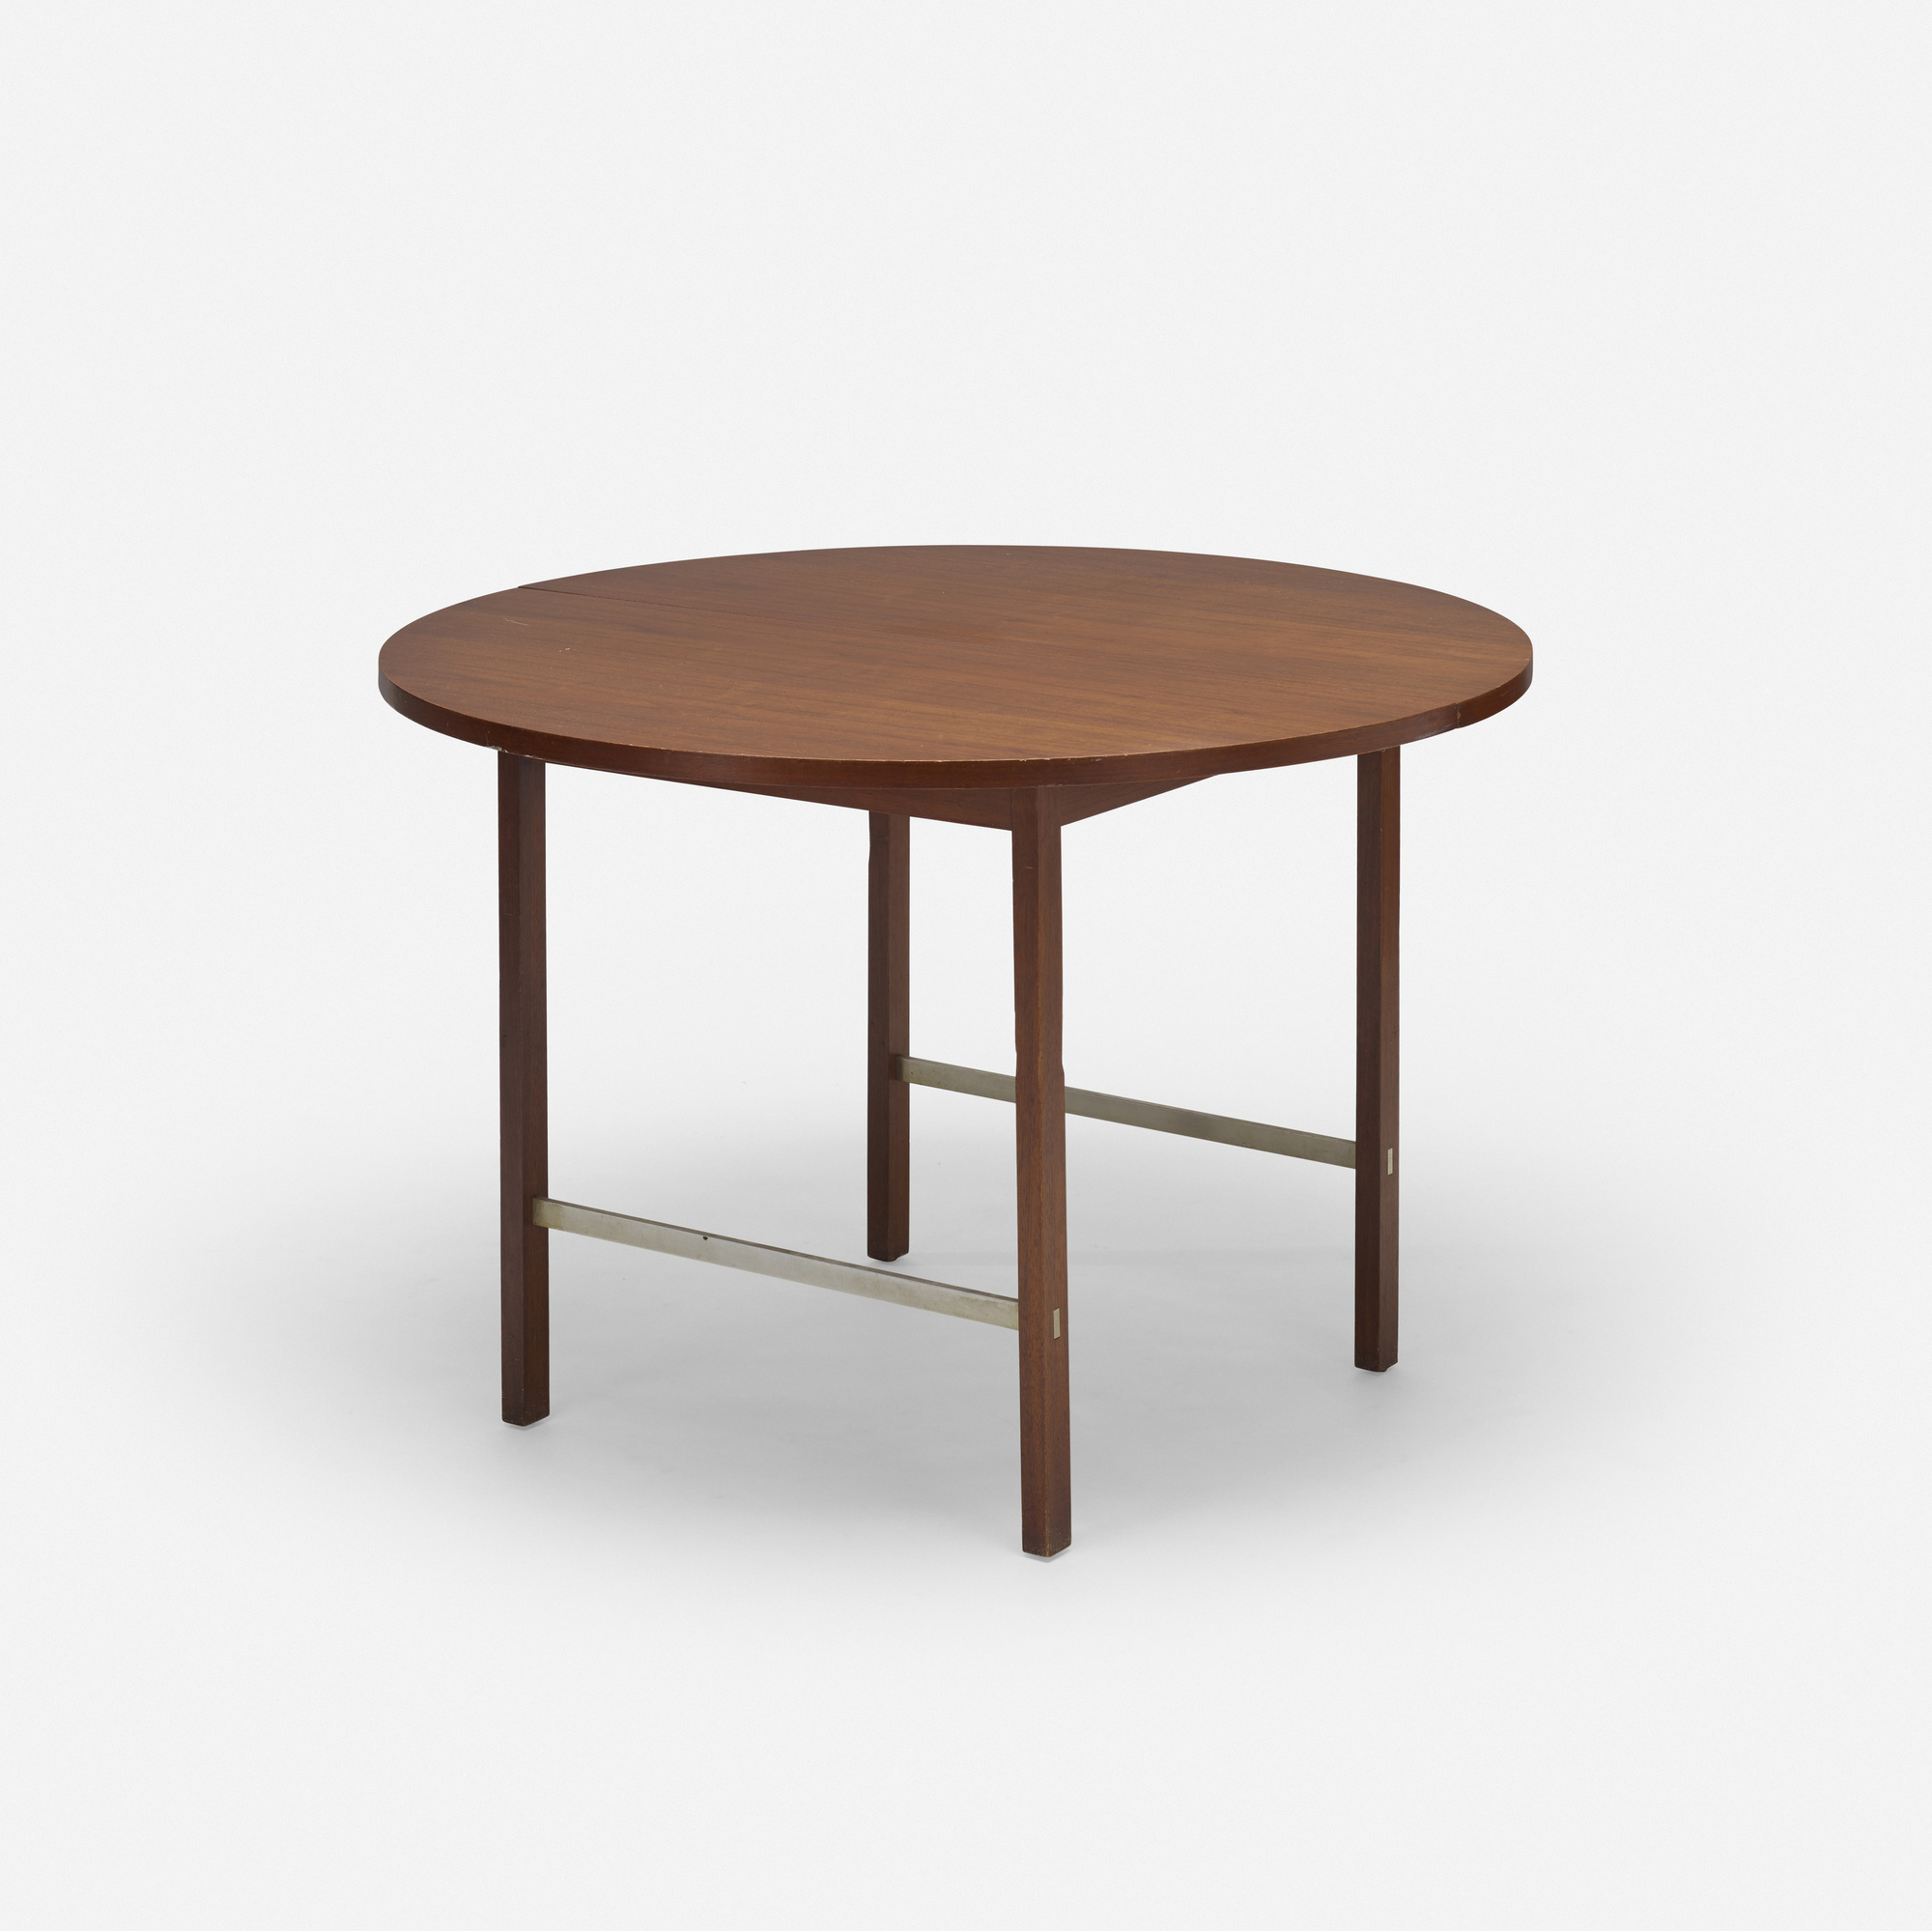 556: Paul McCobb / dining table (2 of 2)